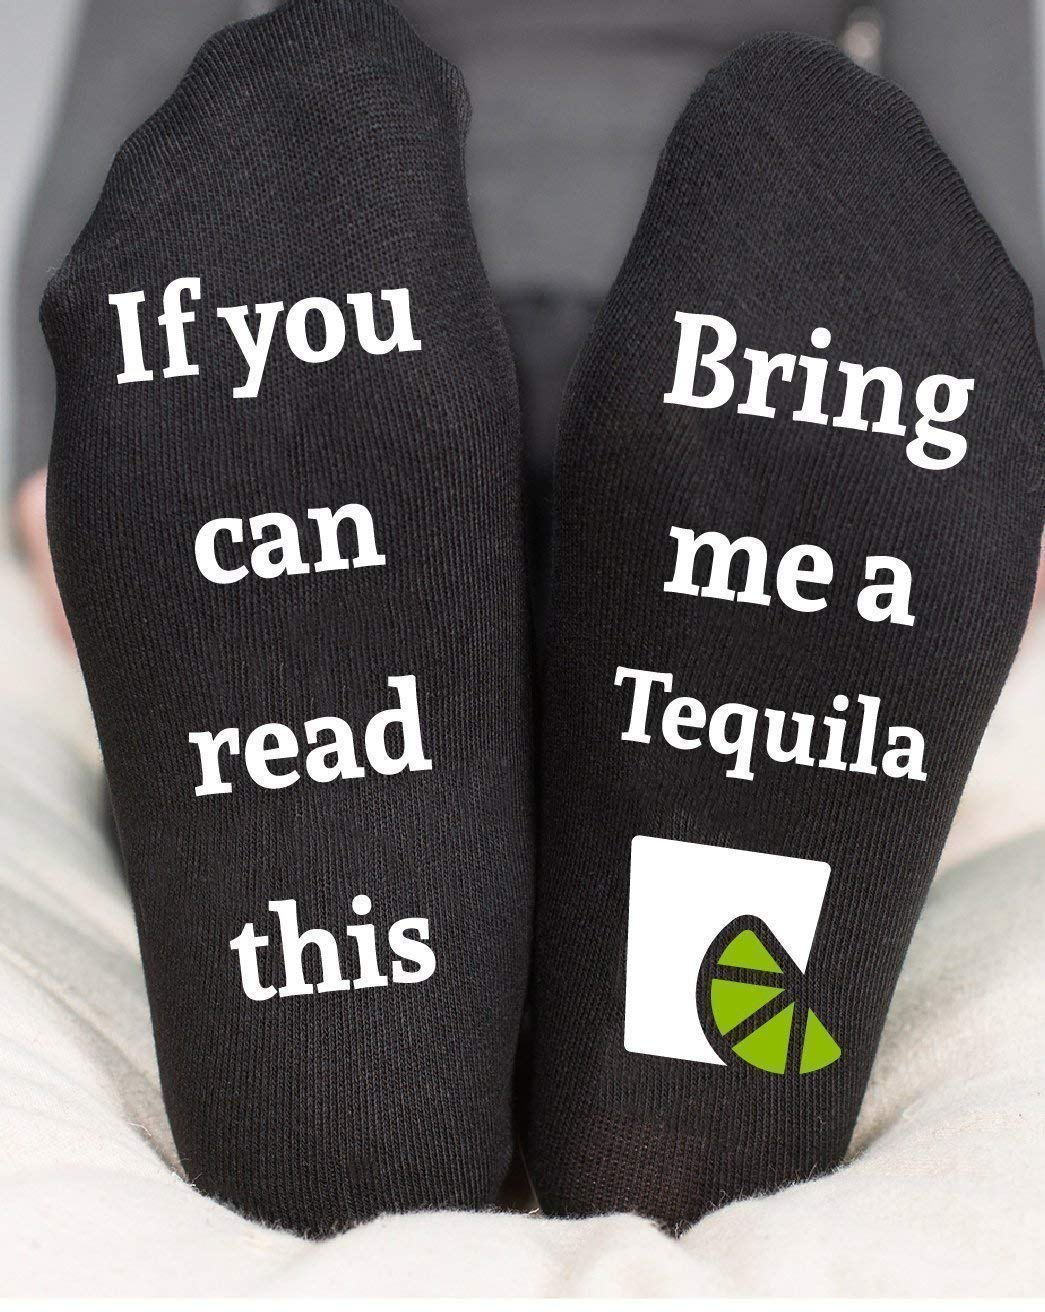 Bring Me A Tequila Socks Funny Gift If You Can Read This